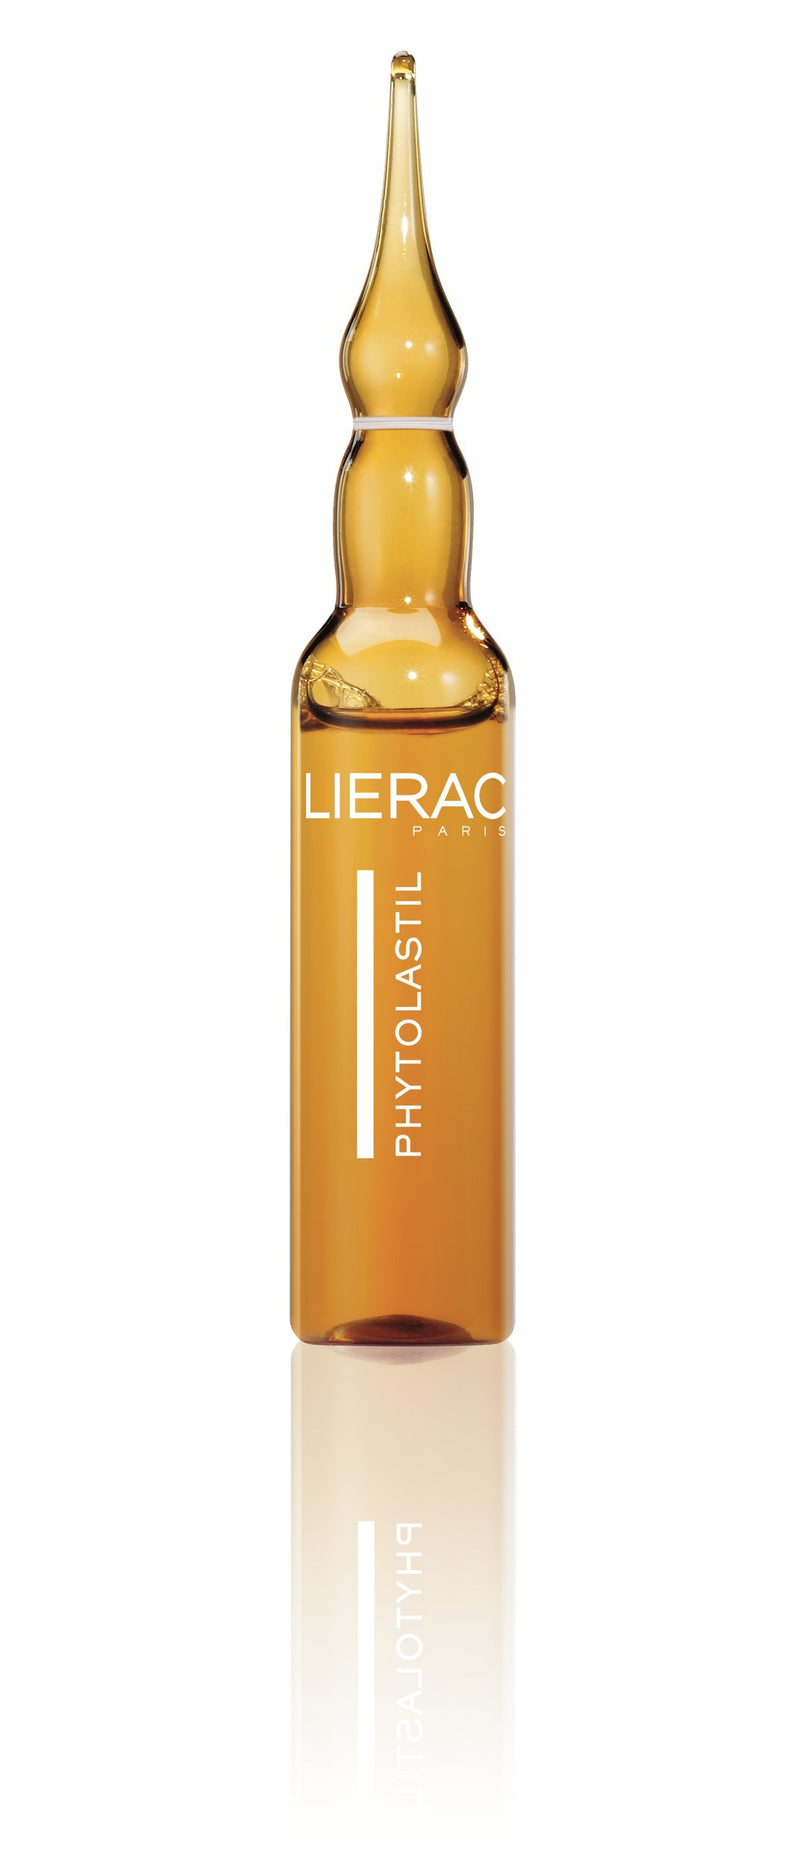 lierac-phytolastil-stretch-mark-correction-serum-cosmetics-online